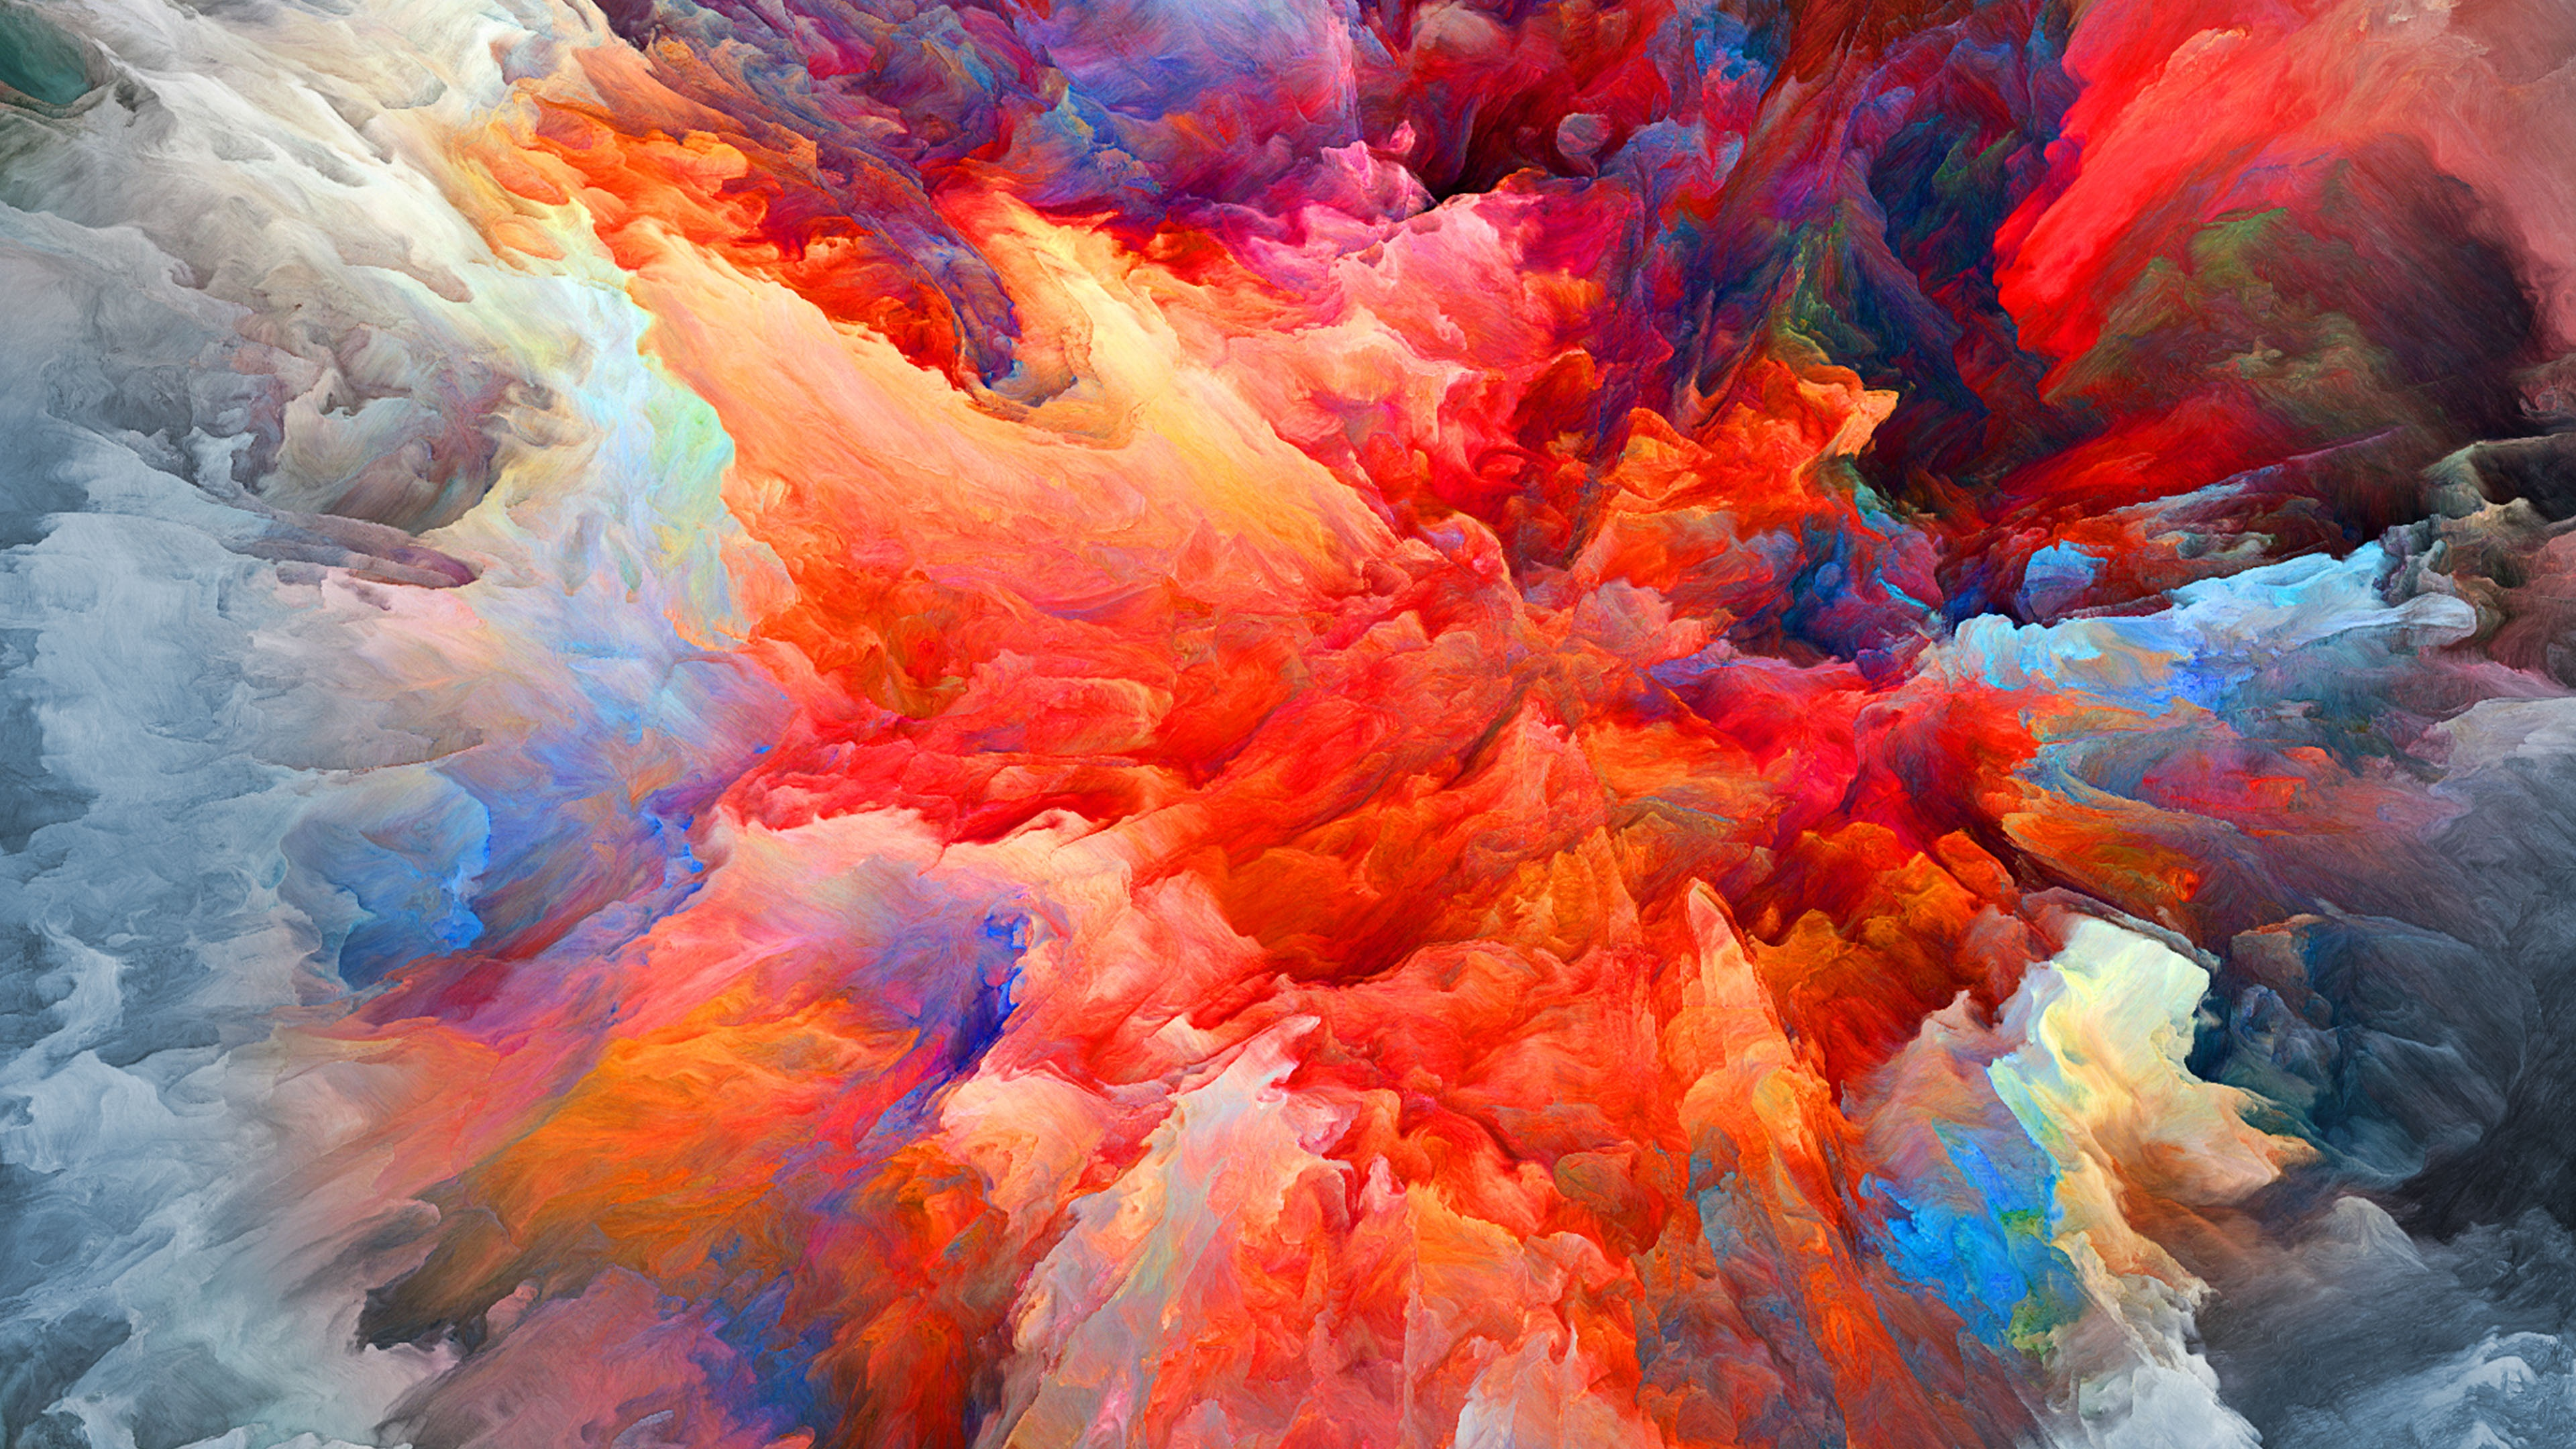 Colorful Blast Of Smoke 4k Ultra Hd Wallpaper Hintergrund